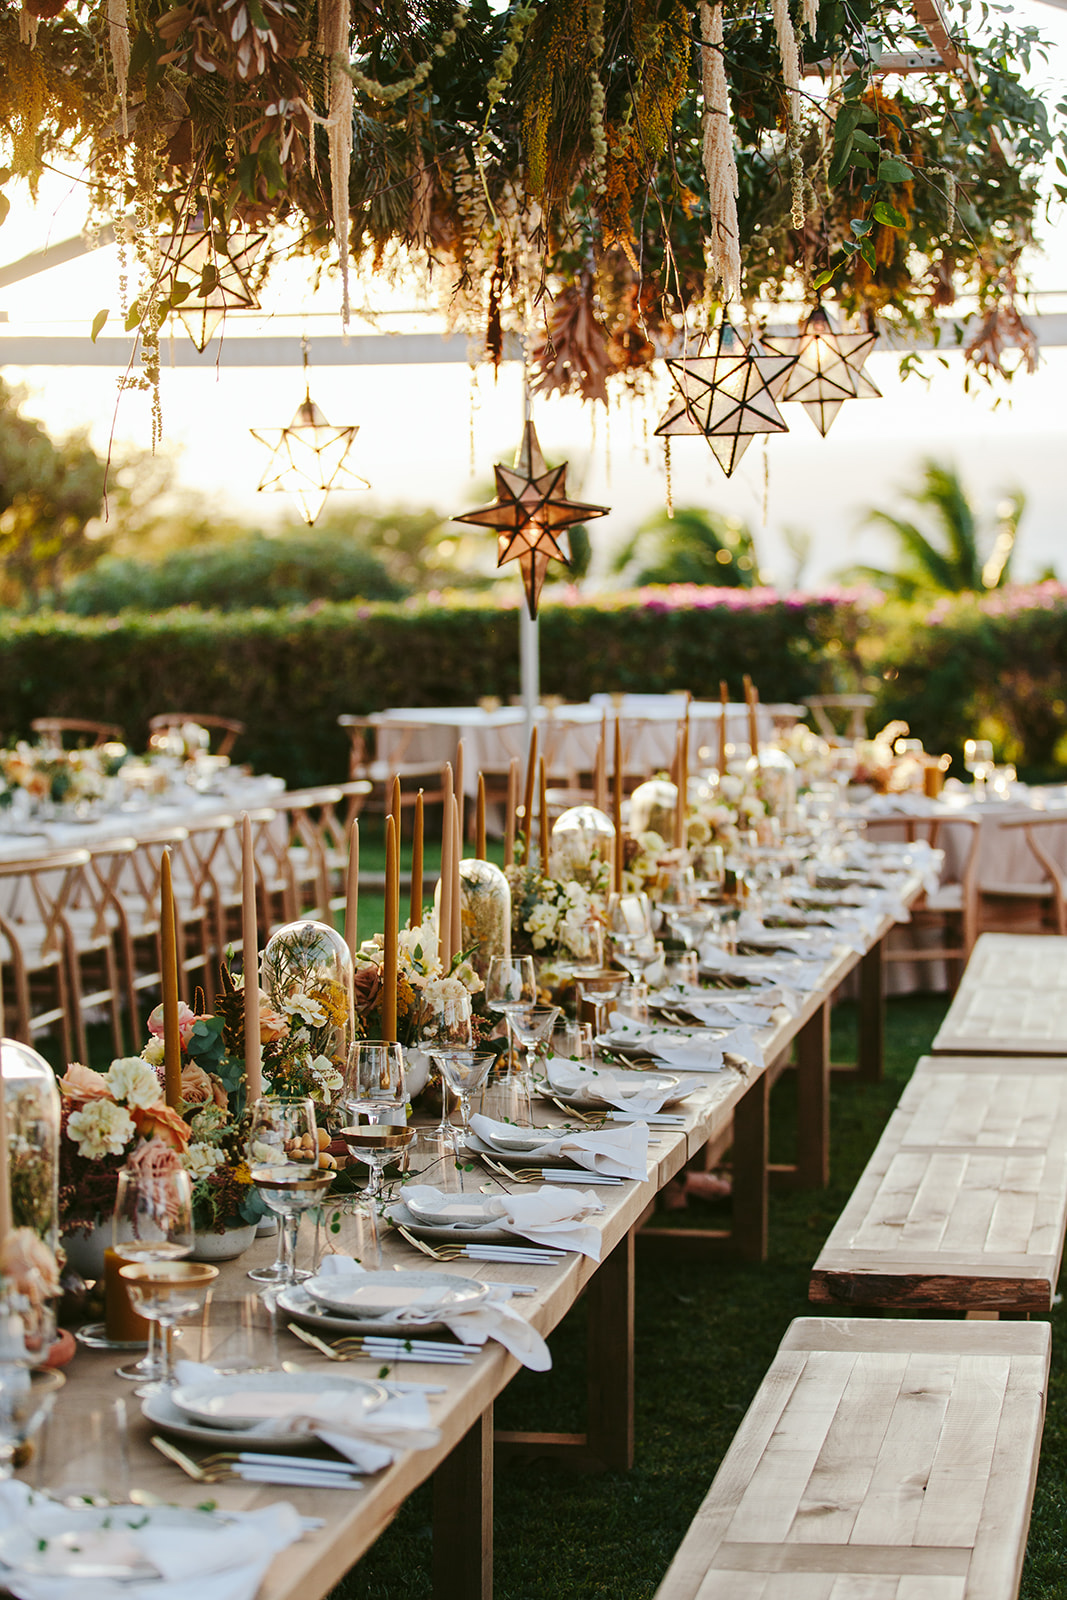 long wooden reception tables with candles, flowers, and hanging stars